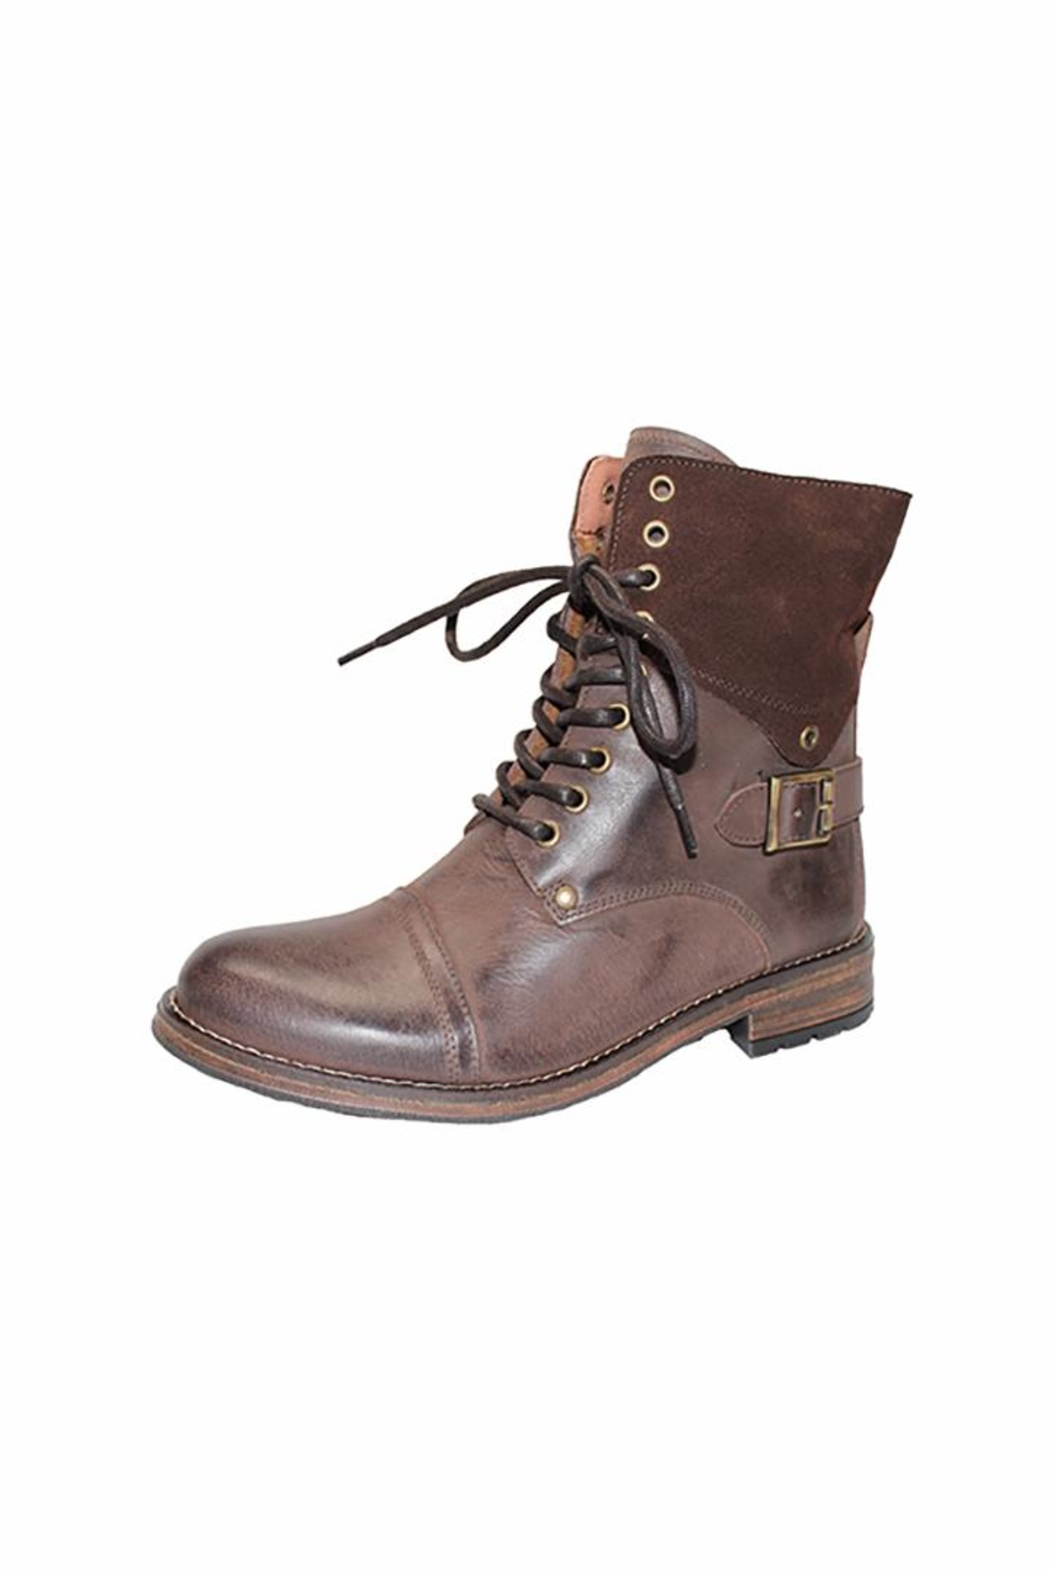 Eric Michael Juniper Combat-Inspired Boot - Main Image